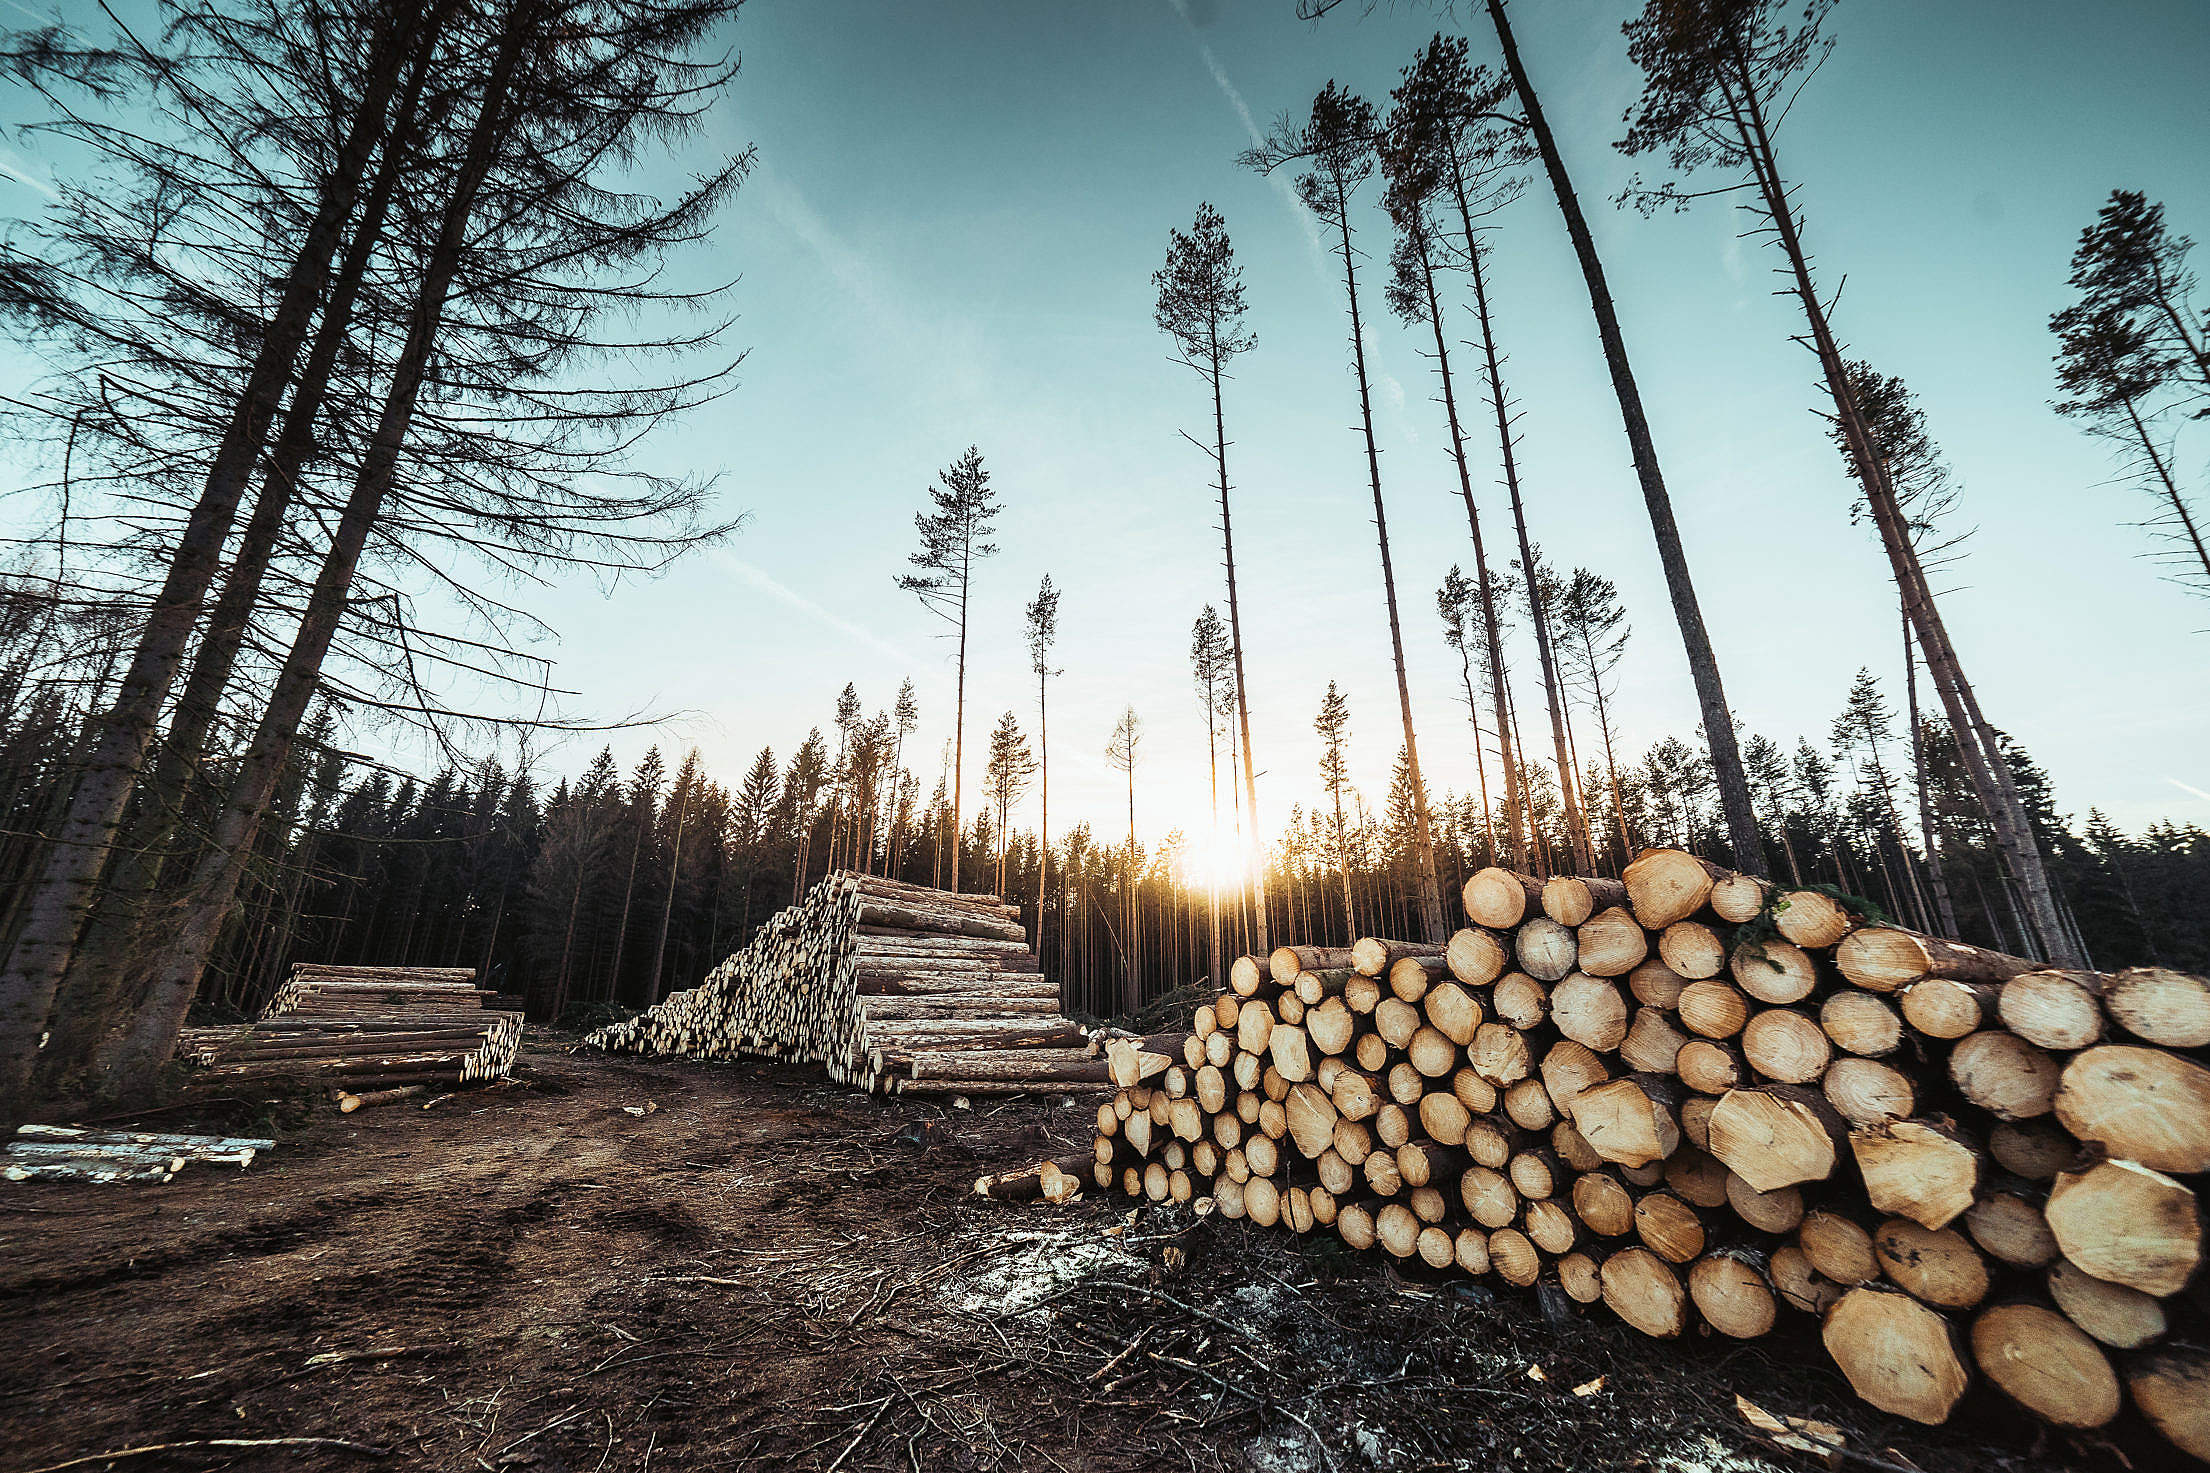 Piles of Wood Logs Forestry Free Stock Photo